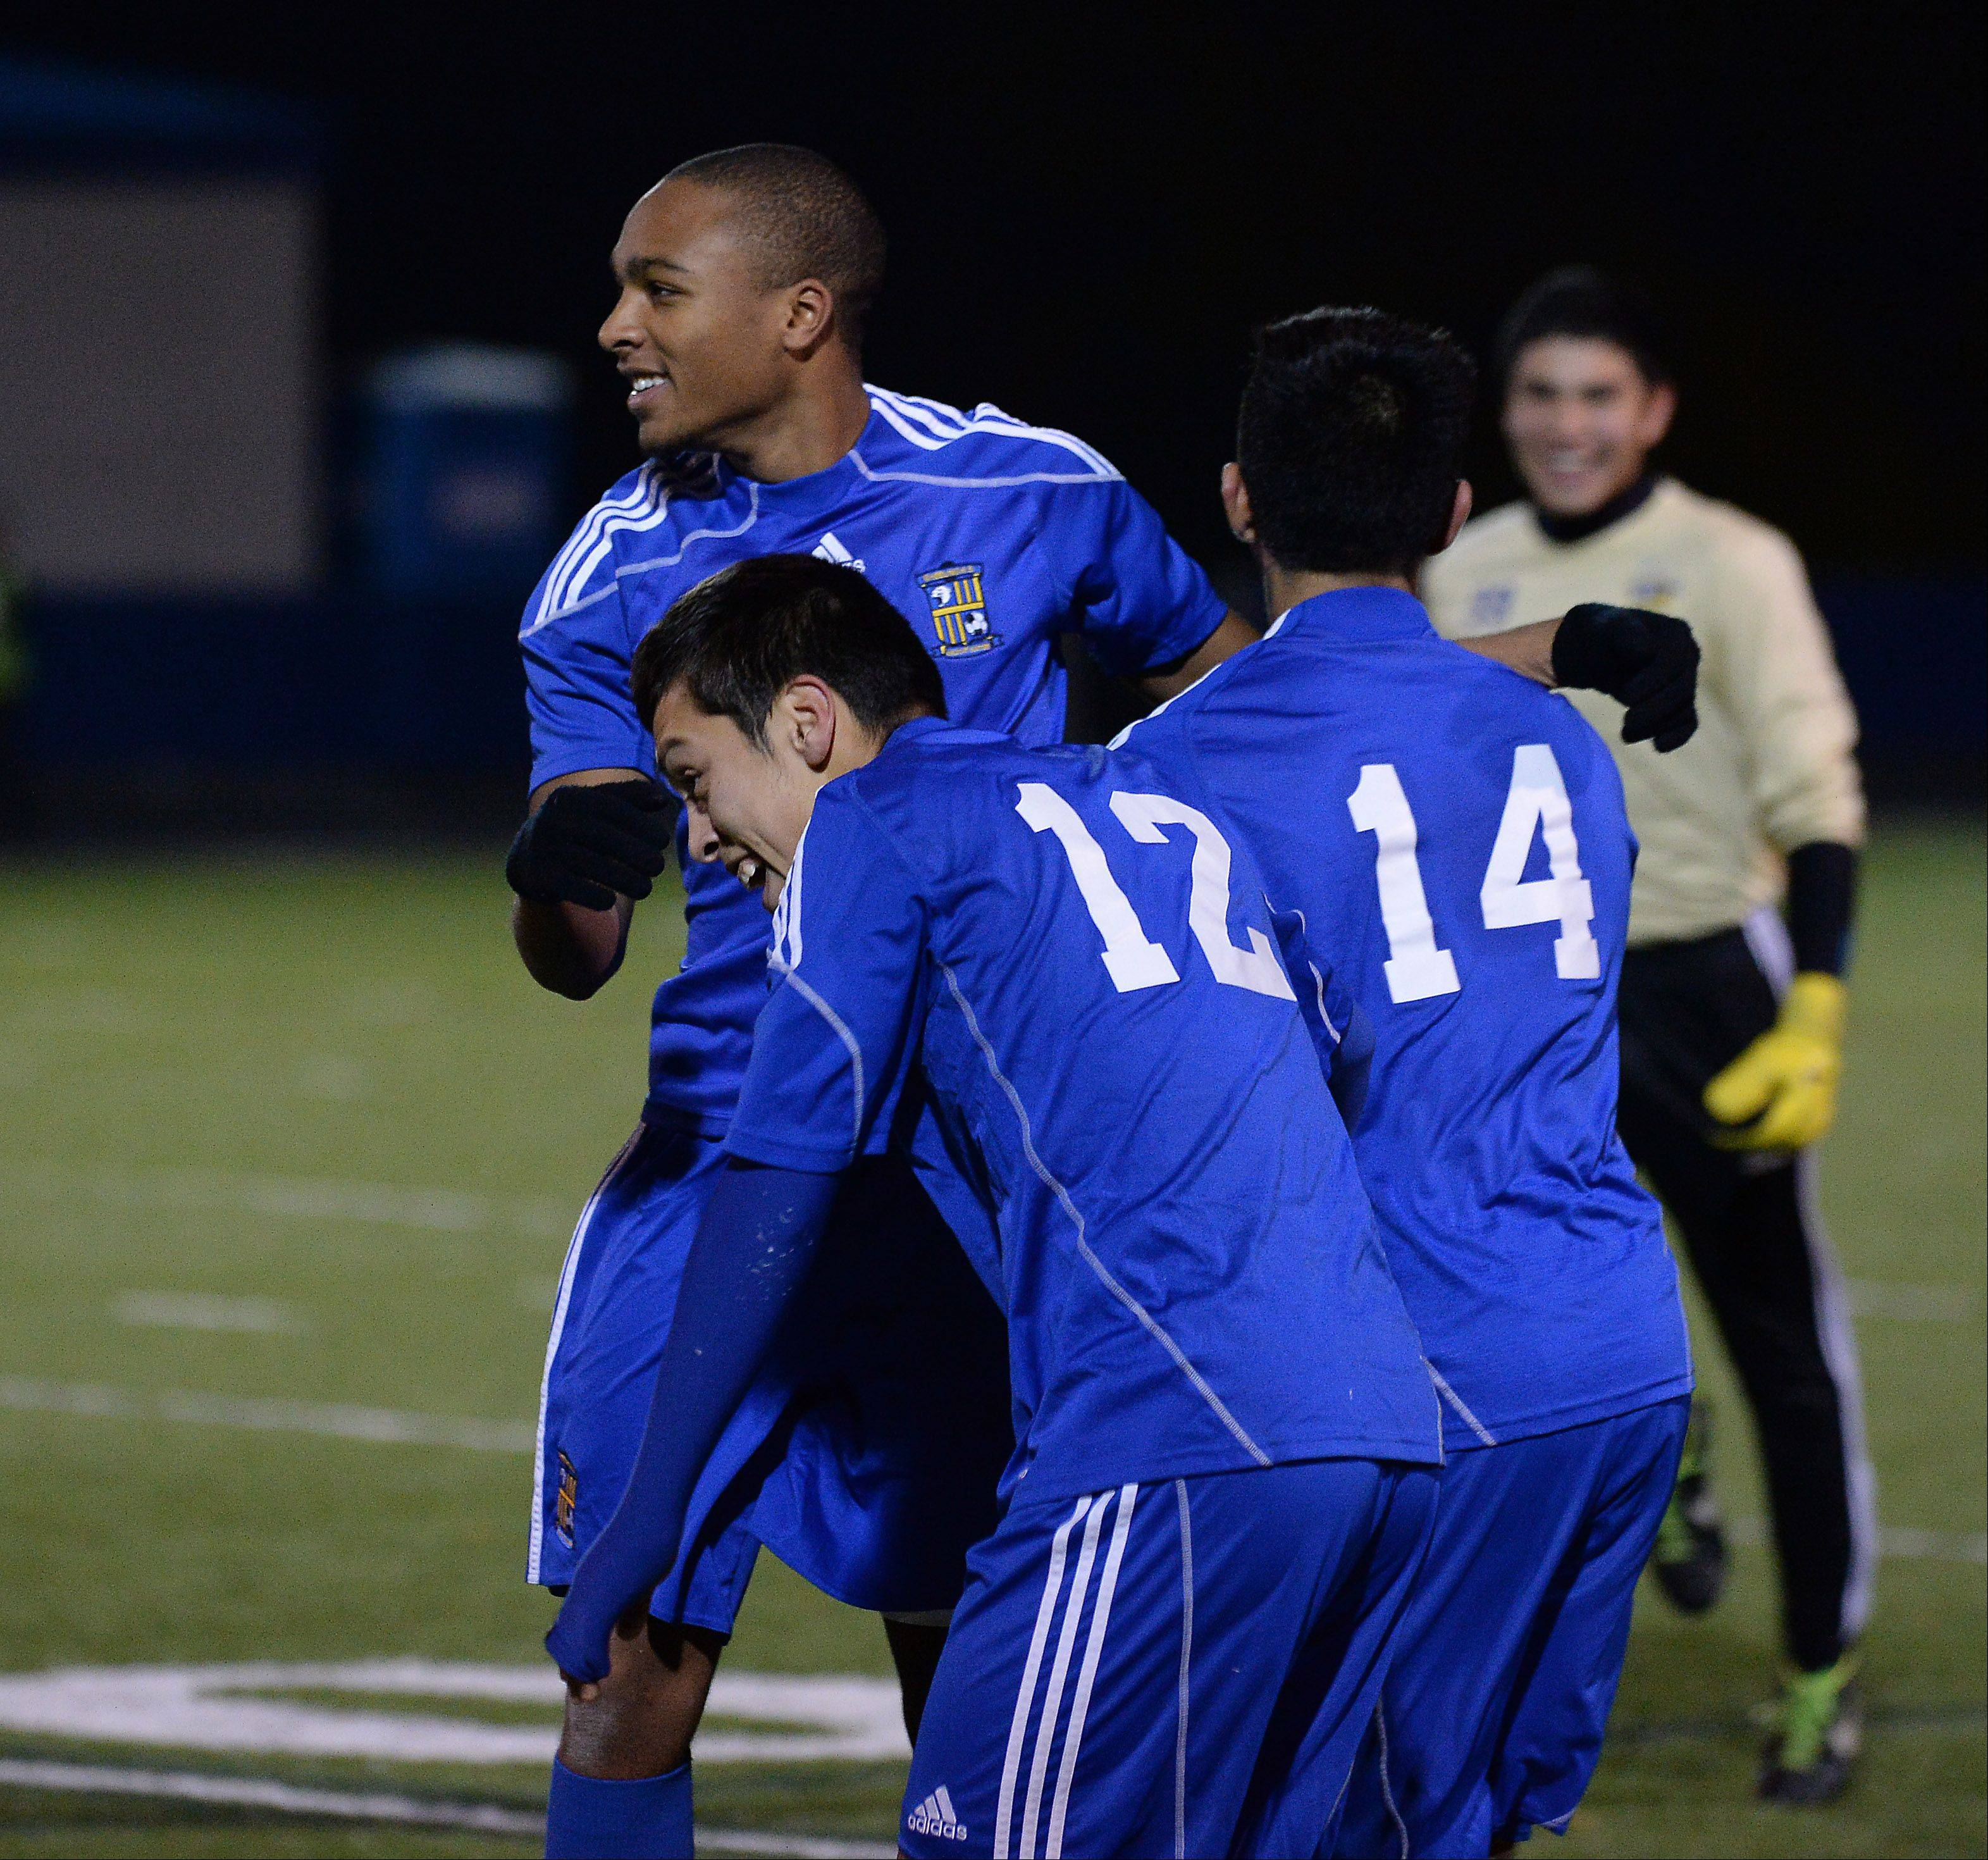 Wheeling's Nathan Laude celebrates his team's victory over Lake Park with his teammates Alfredo Rocha and Marino Lopez after the Wildcats topped Lake Park 3-0 in the Class 3A boys soccer state semifinals at Hoffman Estates on Friday.